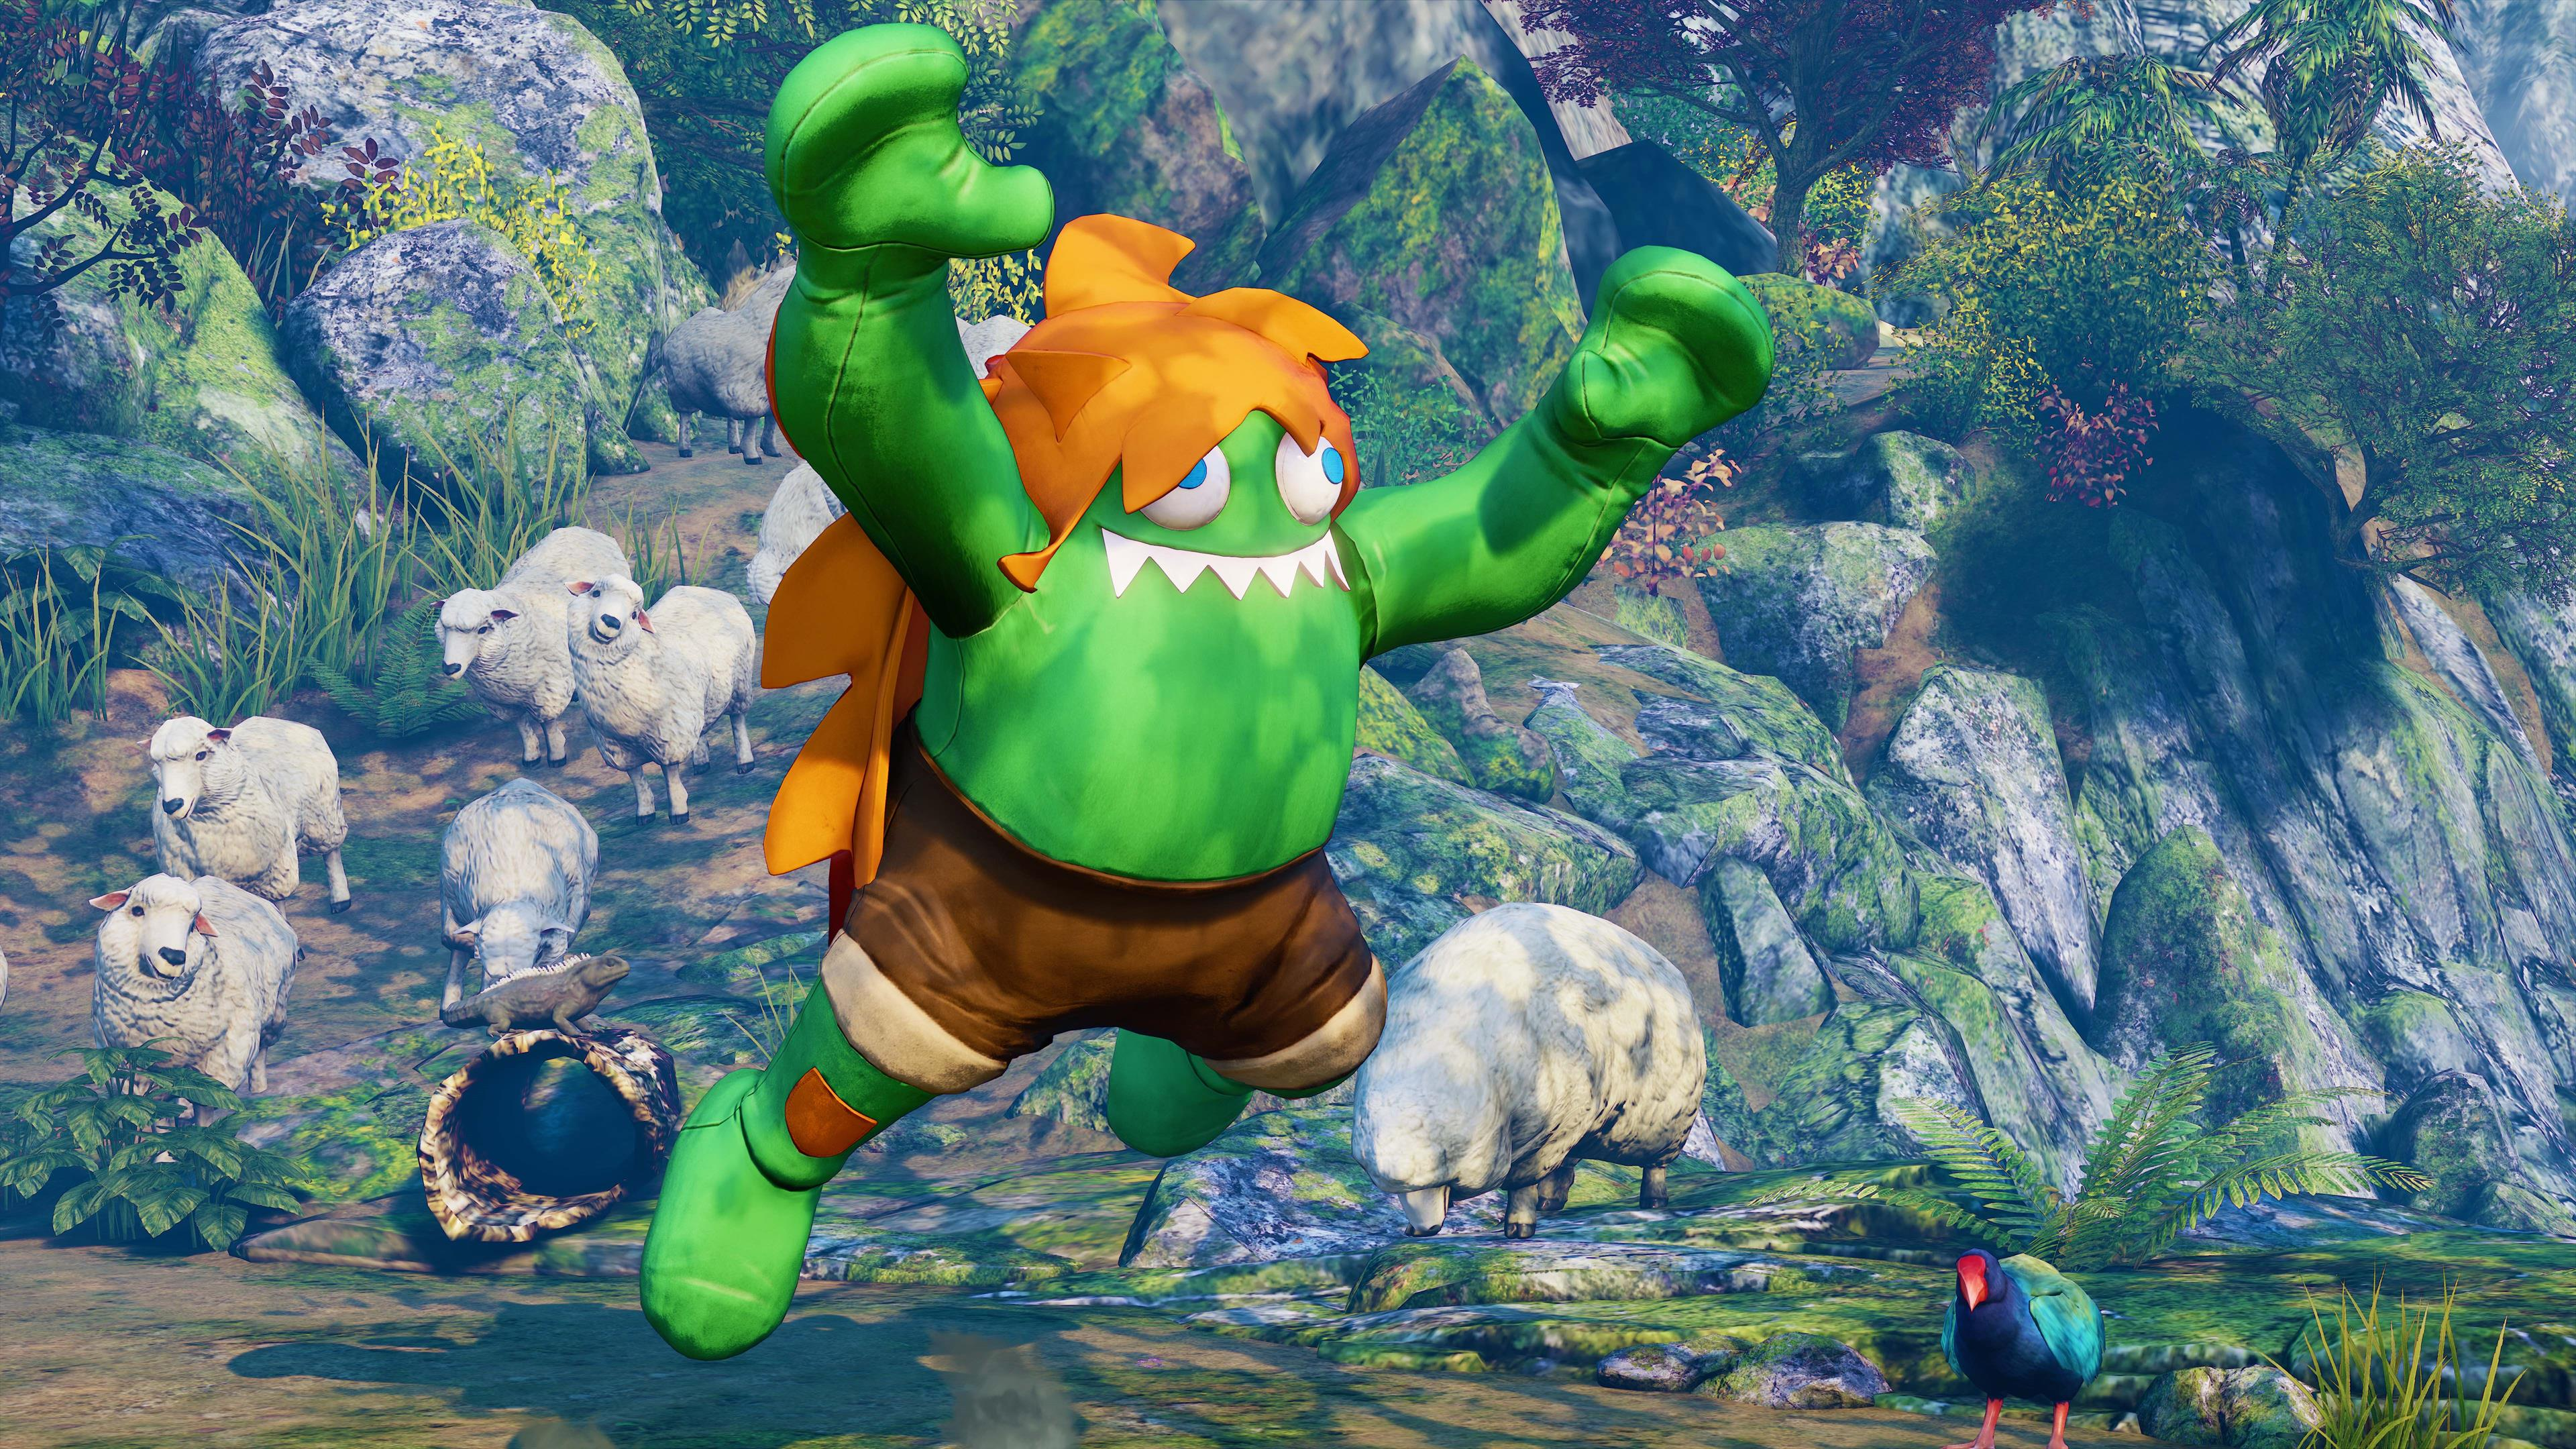 Blanka Street Fighter 5 Moves - How To Kick Ass